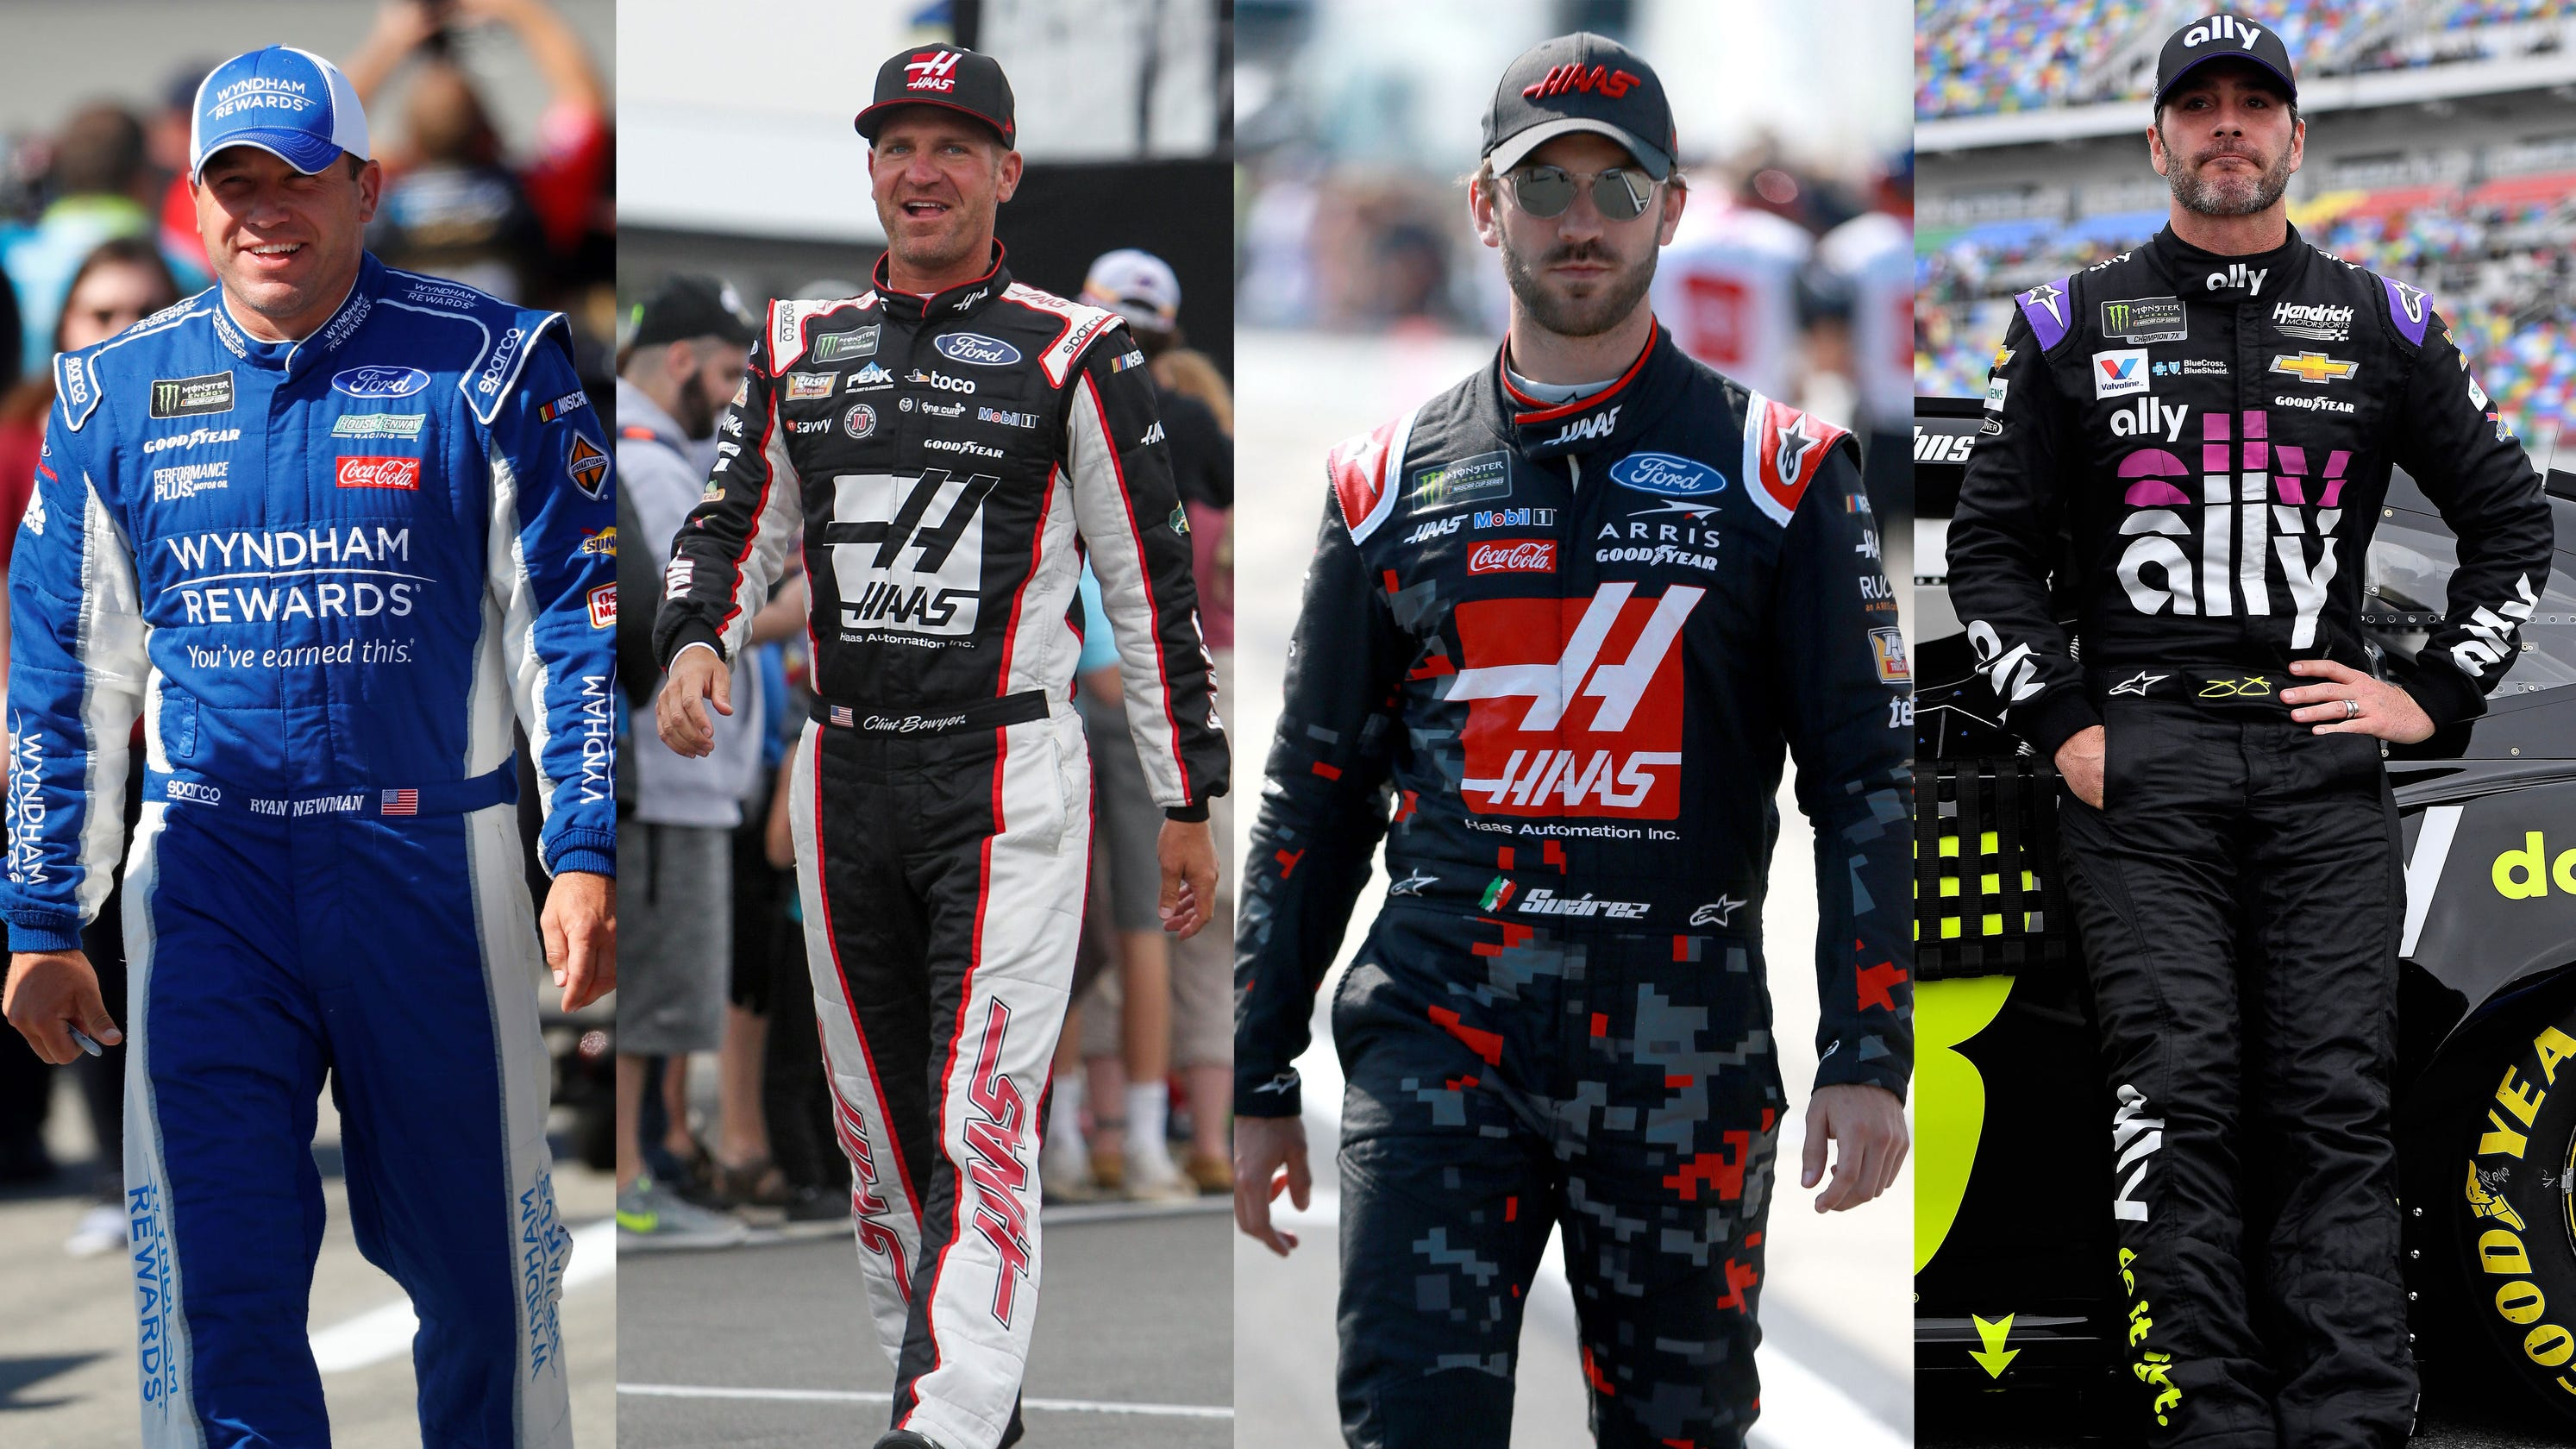 Four drivers seek Bristol boost as NASCAR playoff bubble begins to shrink